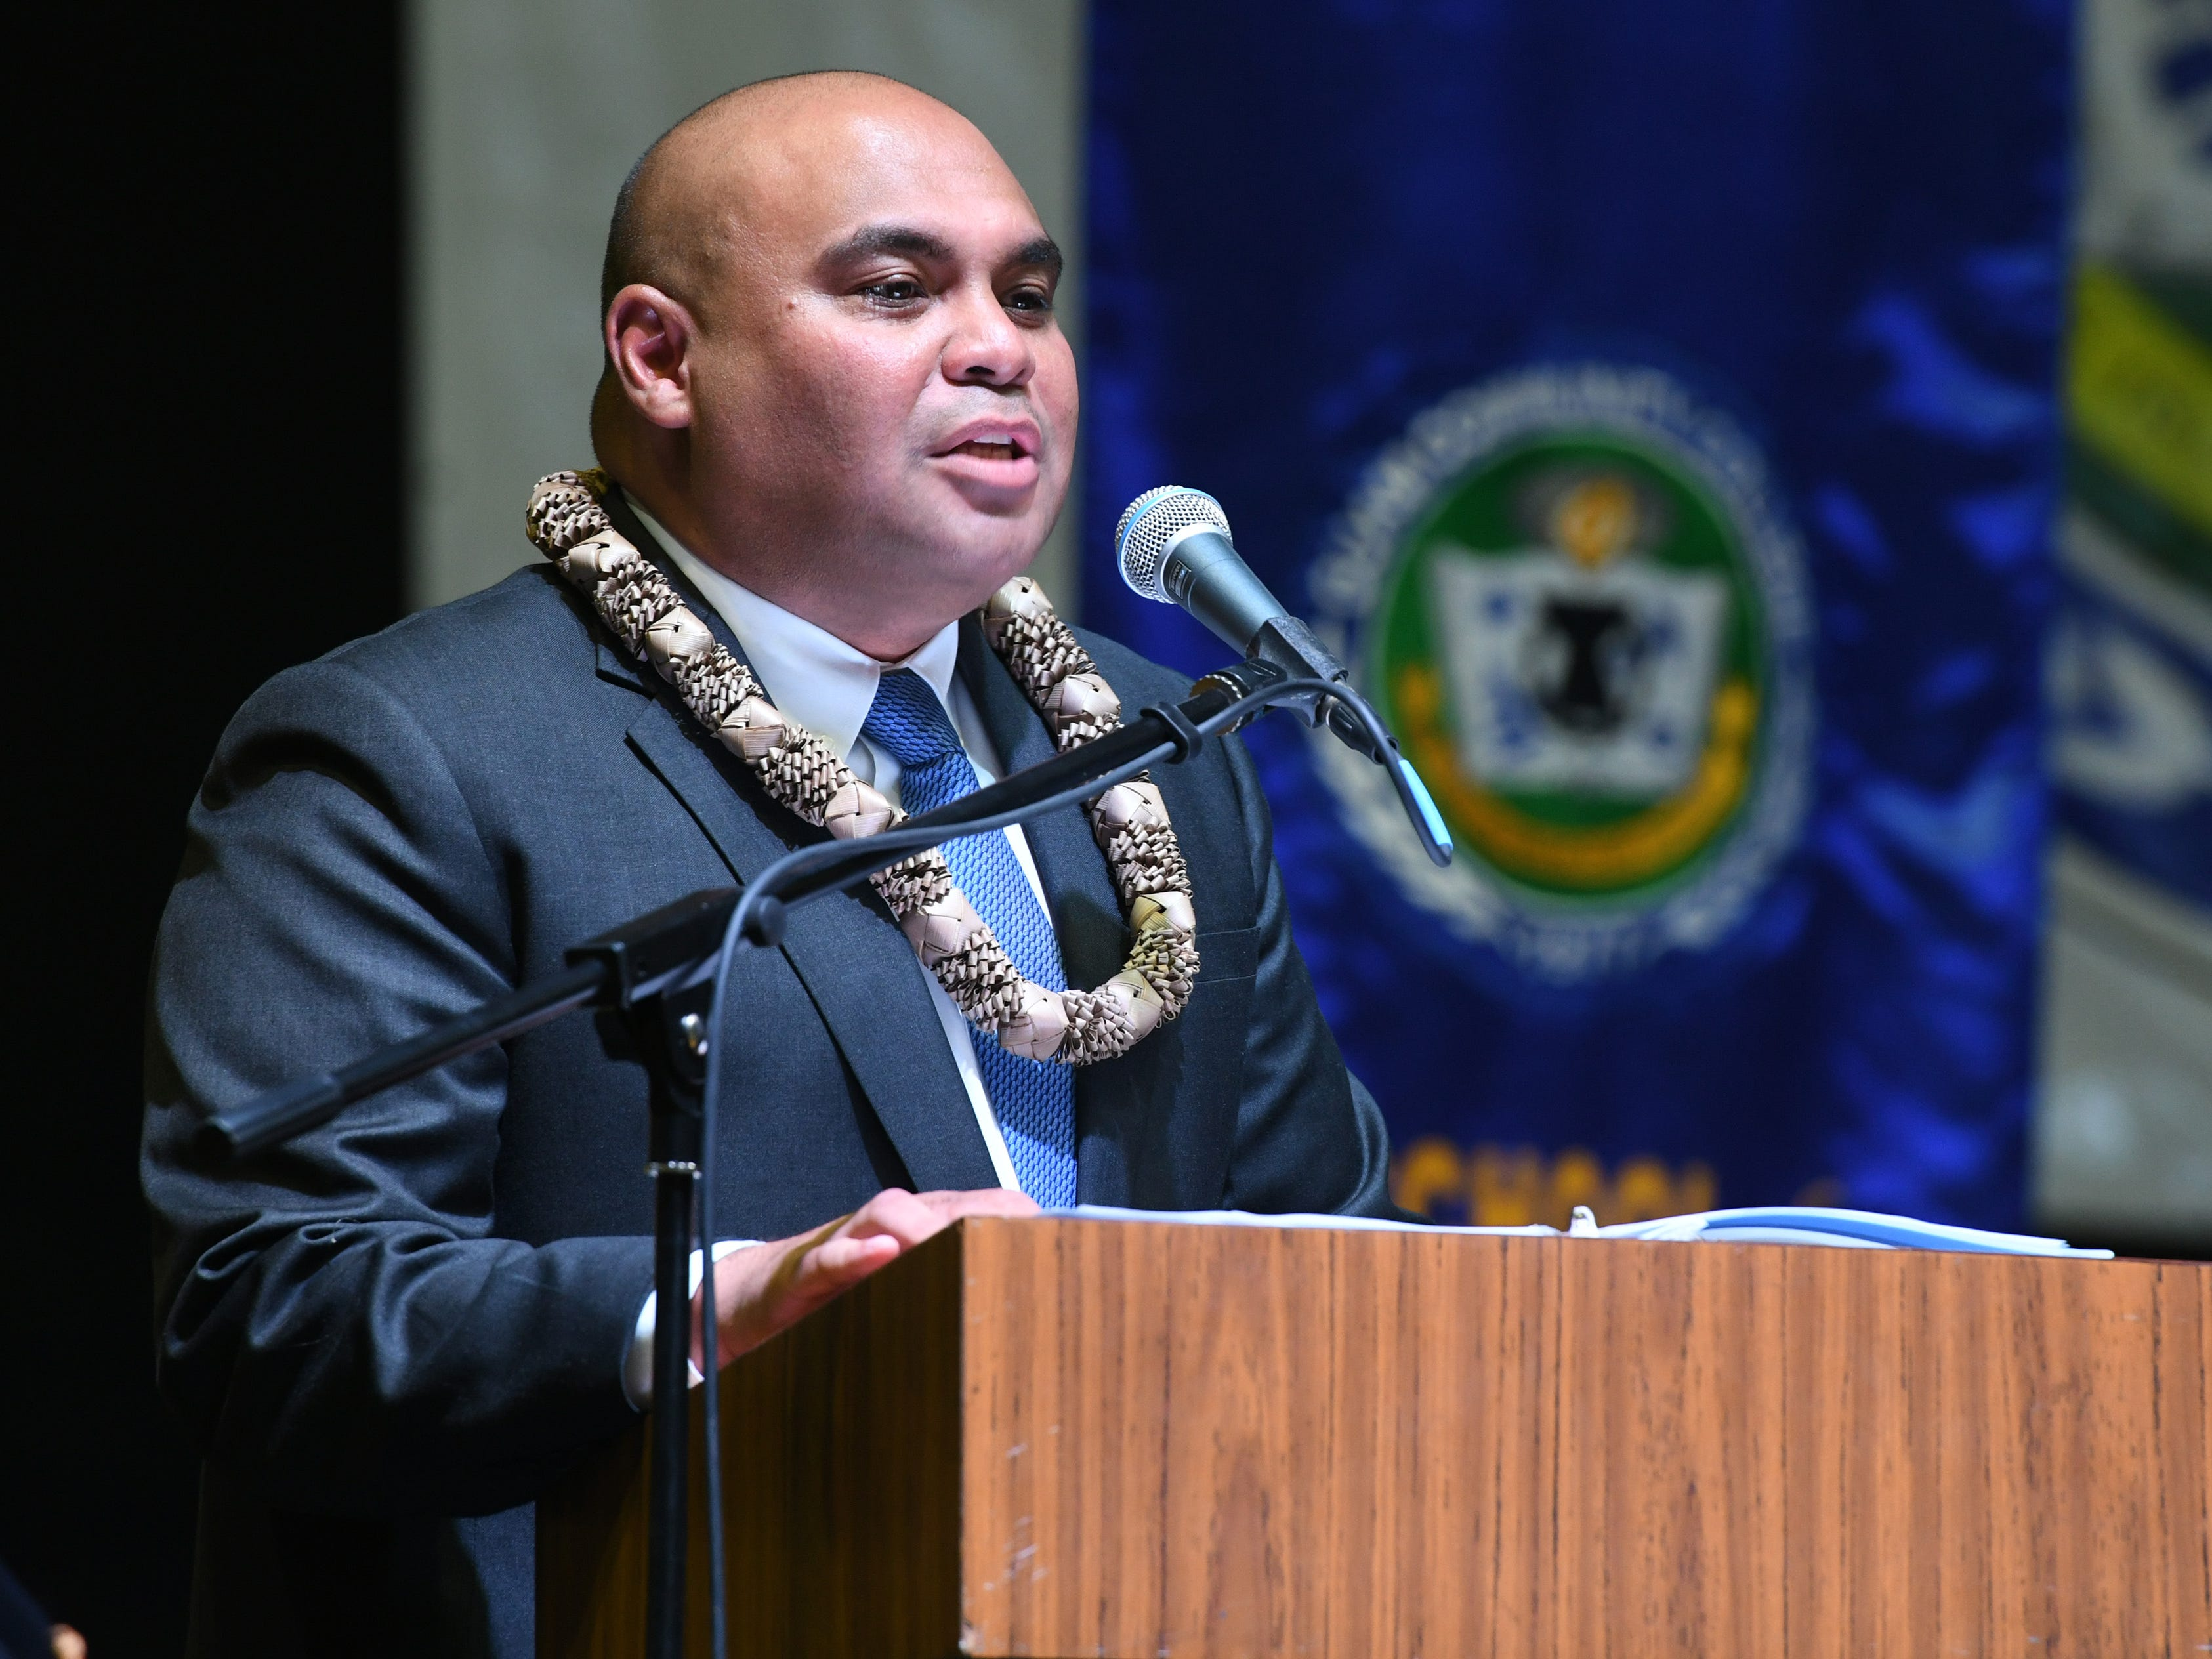 Lt. Gov. Josh Tenorio speaks to graduates and those in attendance at the Guam Community College commencement exercise at the University of Guam in Mangilao on Friday, May 10, 2019.